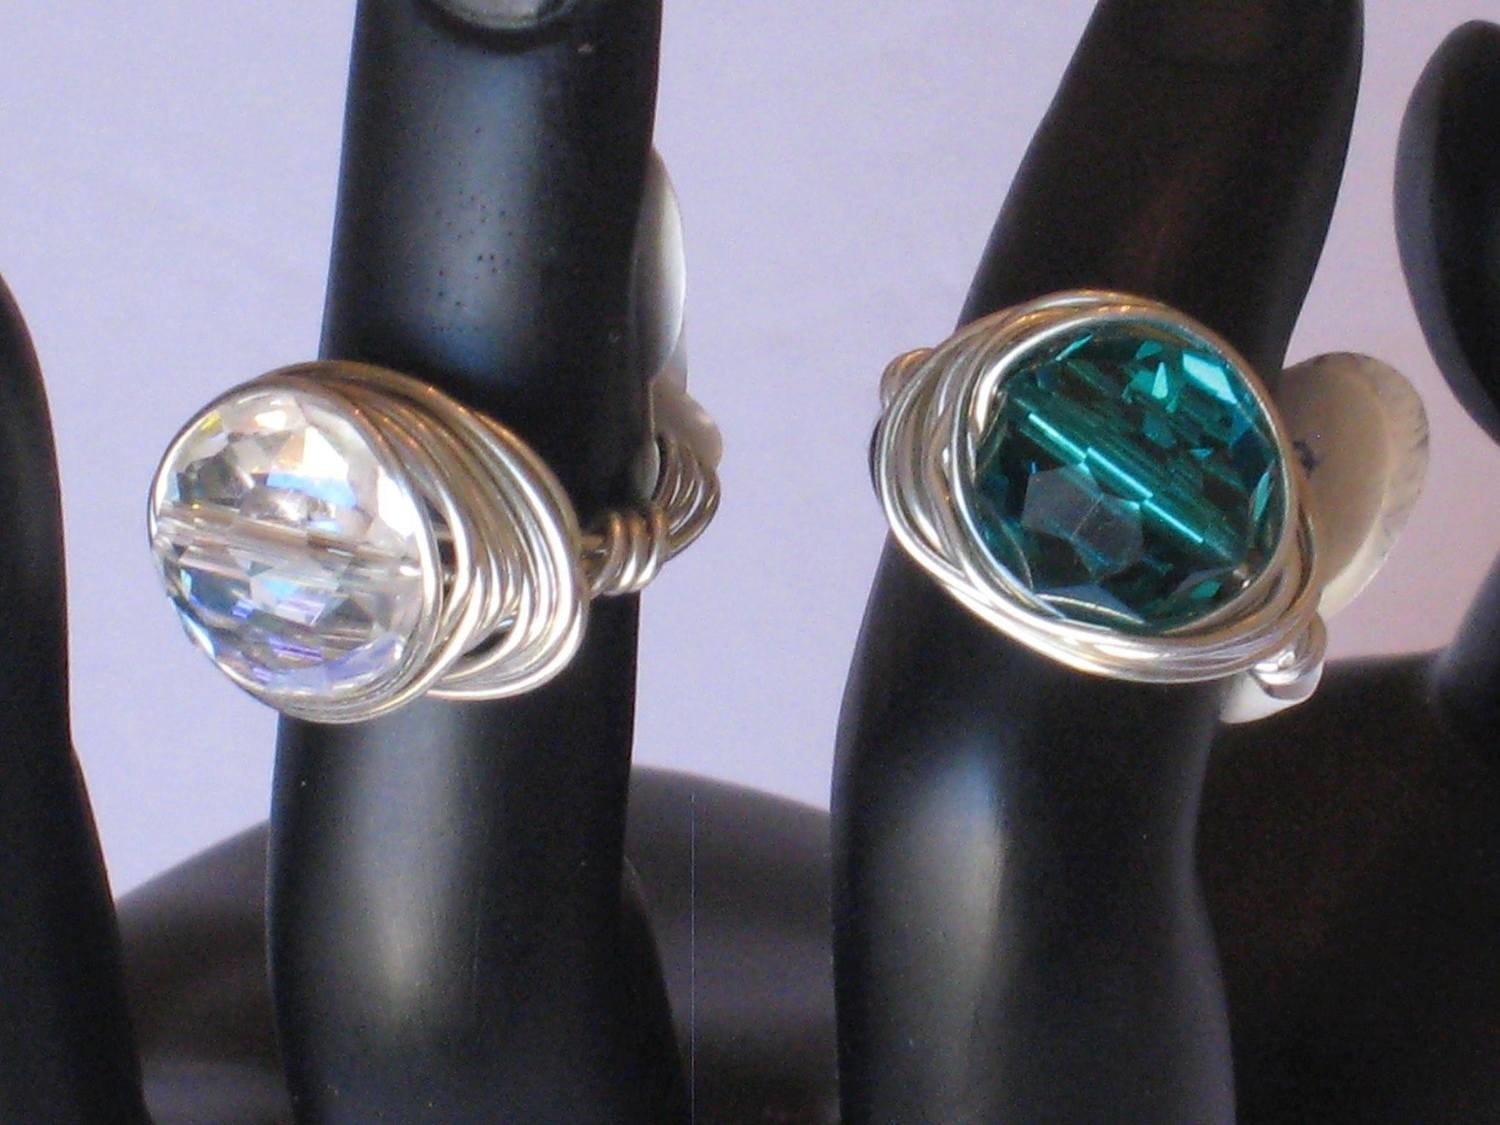 2 WRAPPED GLASS BEADED RINGS/ 2 ANNEAUX DE PERLE DE VERRE ENROULE EN FIL